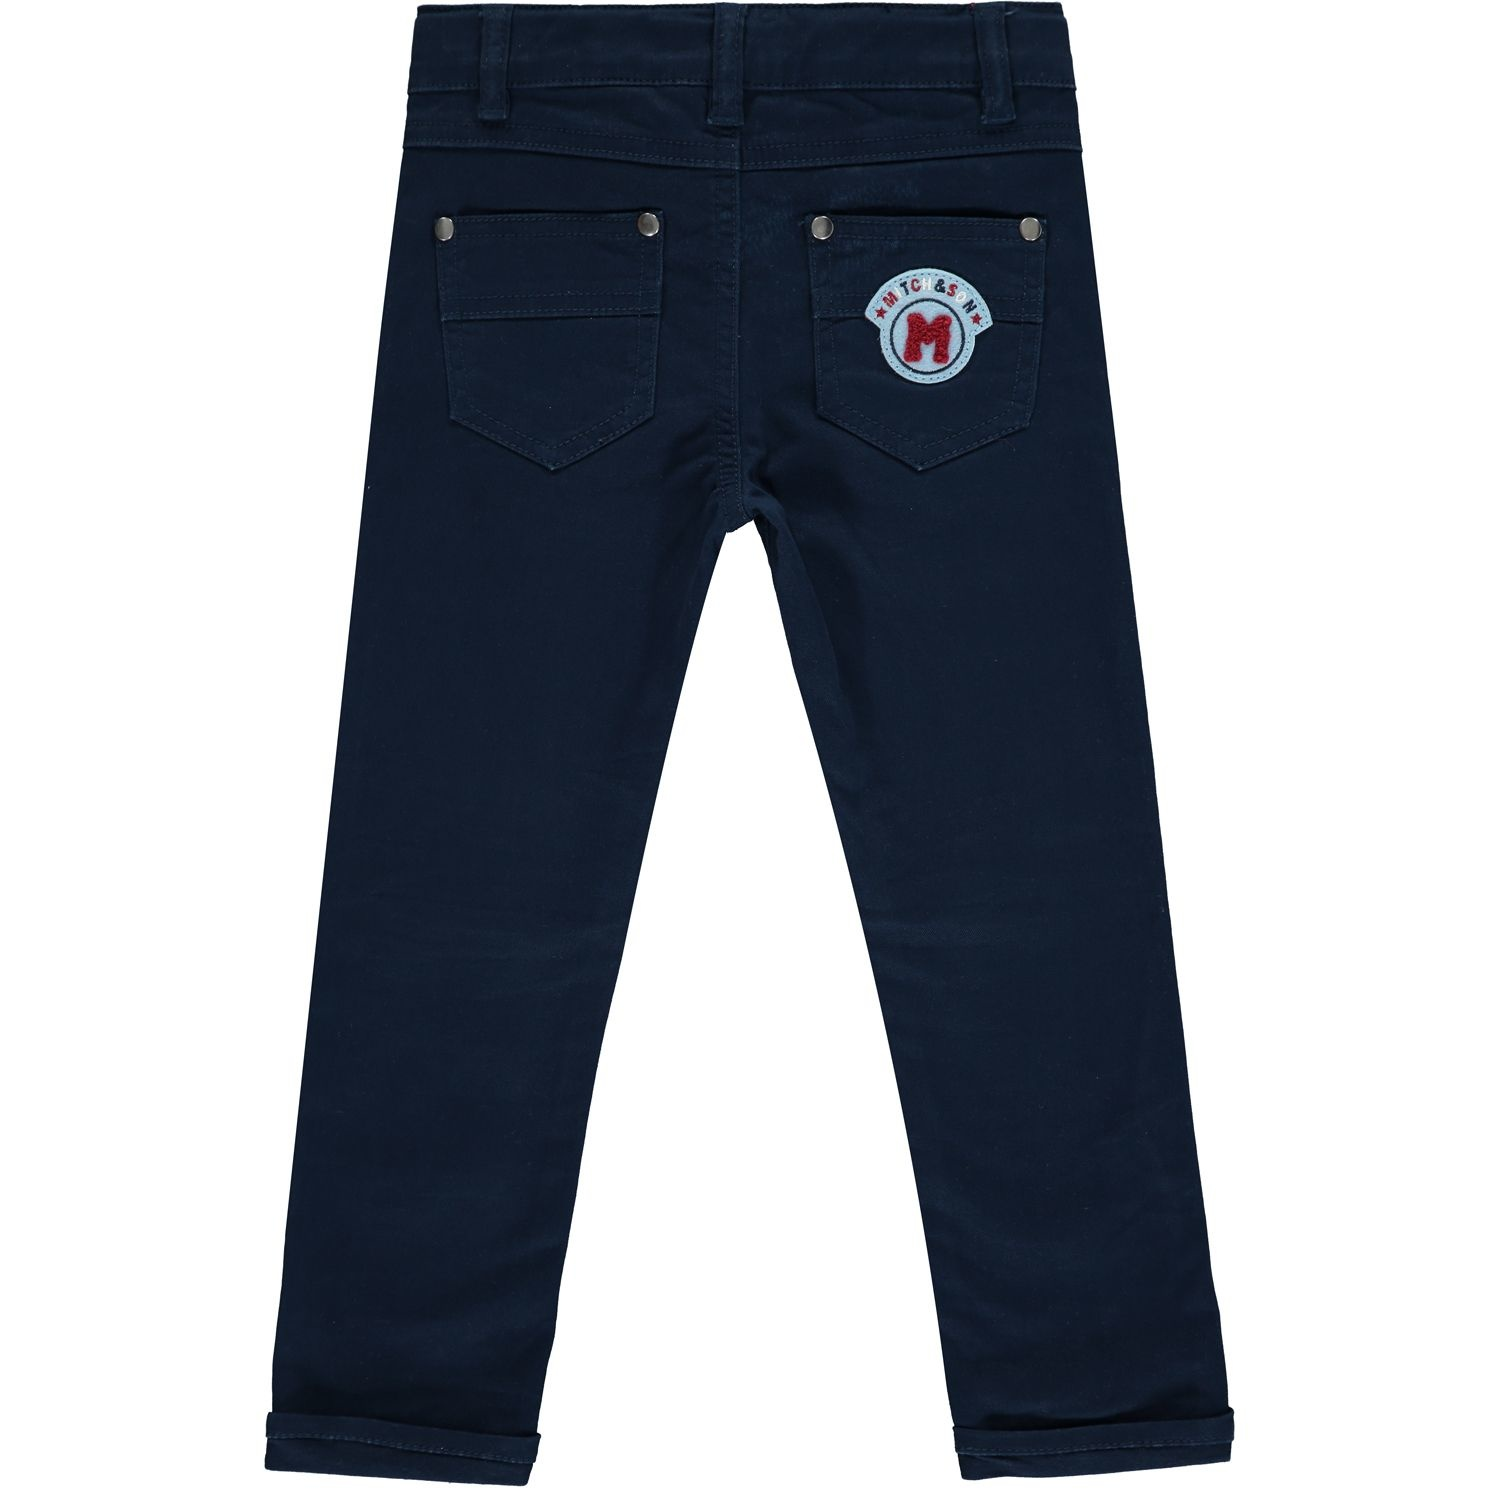 Mitch and Son Mitch & Son Duncan Navy Twill Trouser